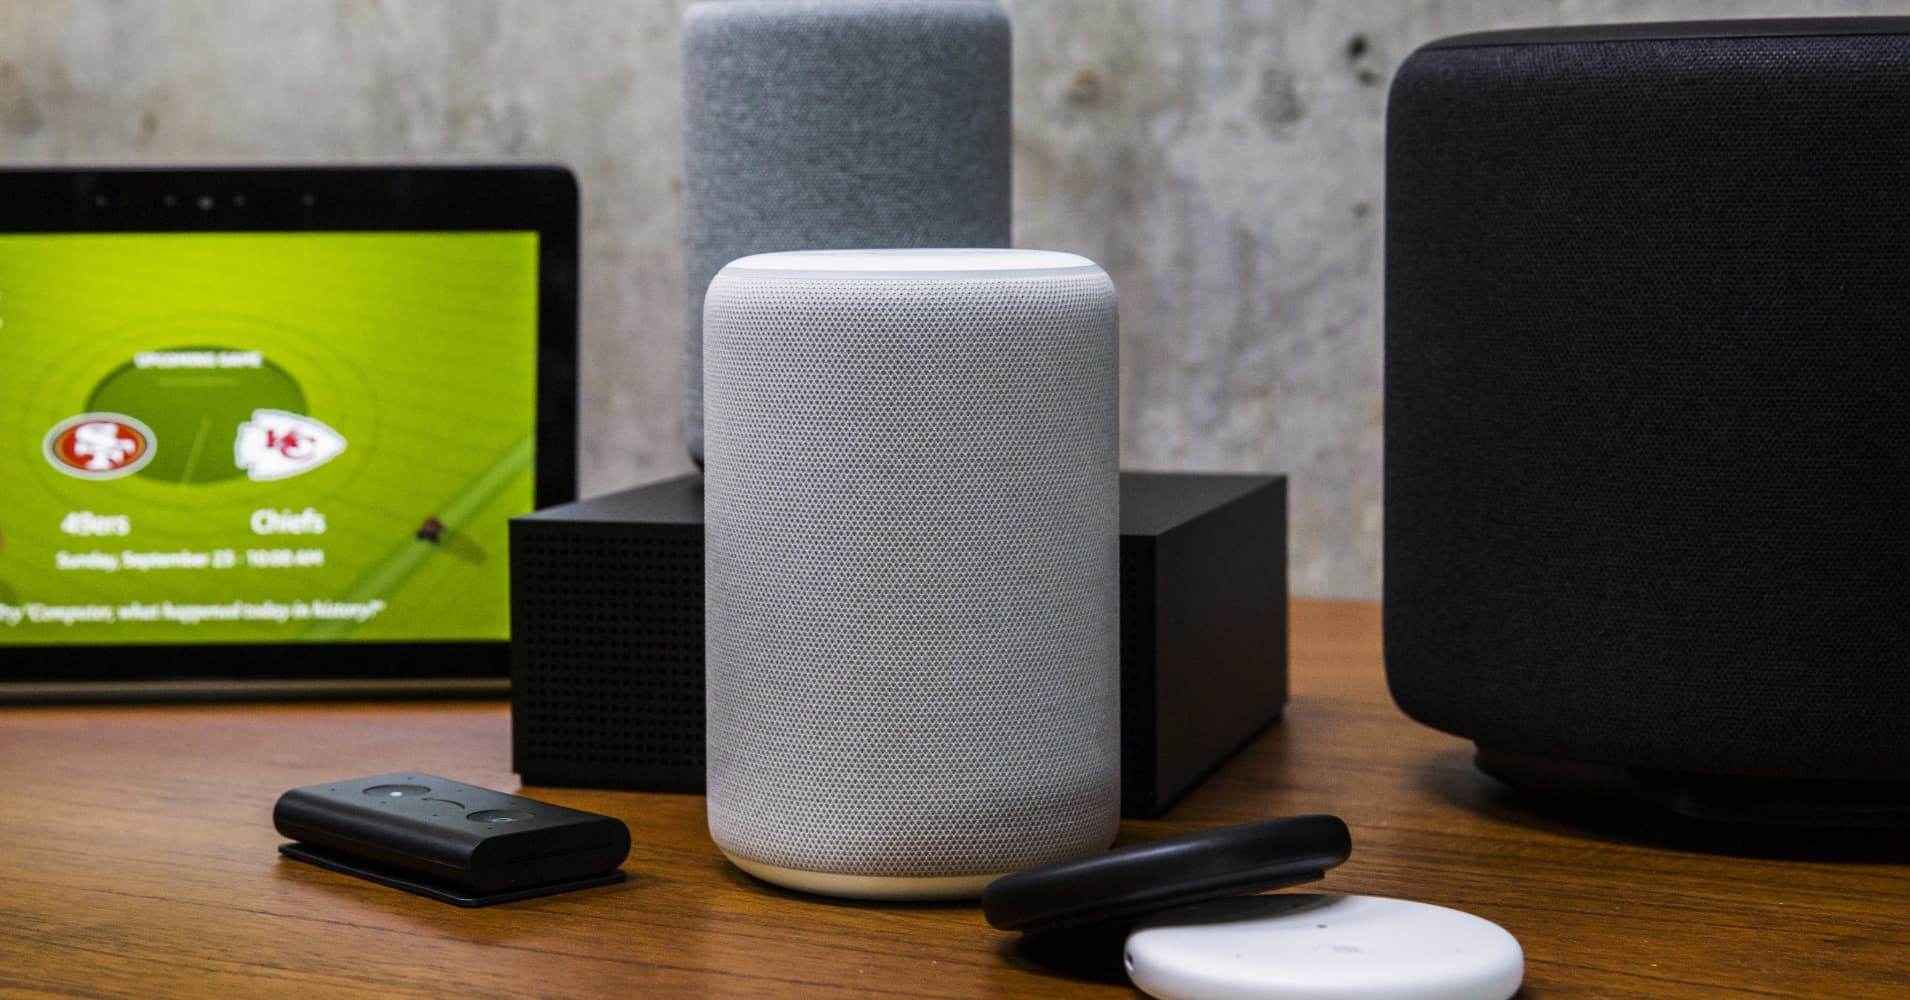 Here's how to choose between the Amazon Echo, Google Home and Apple HomePod